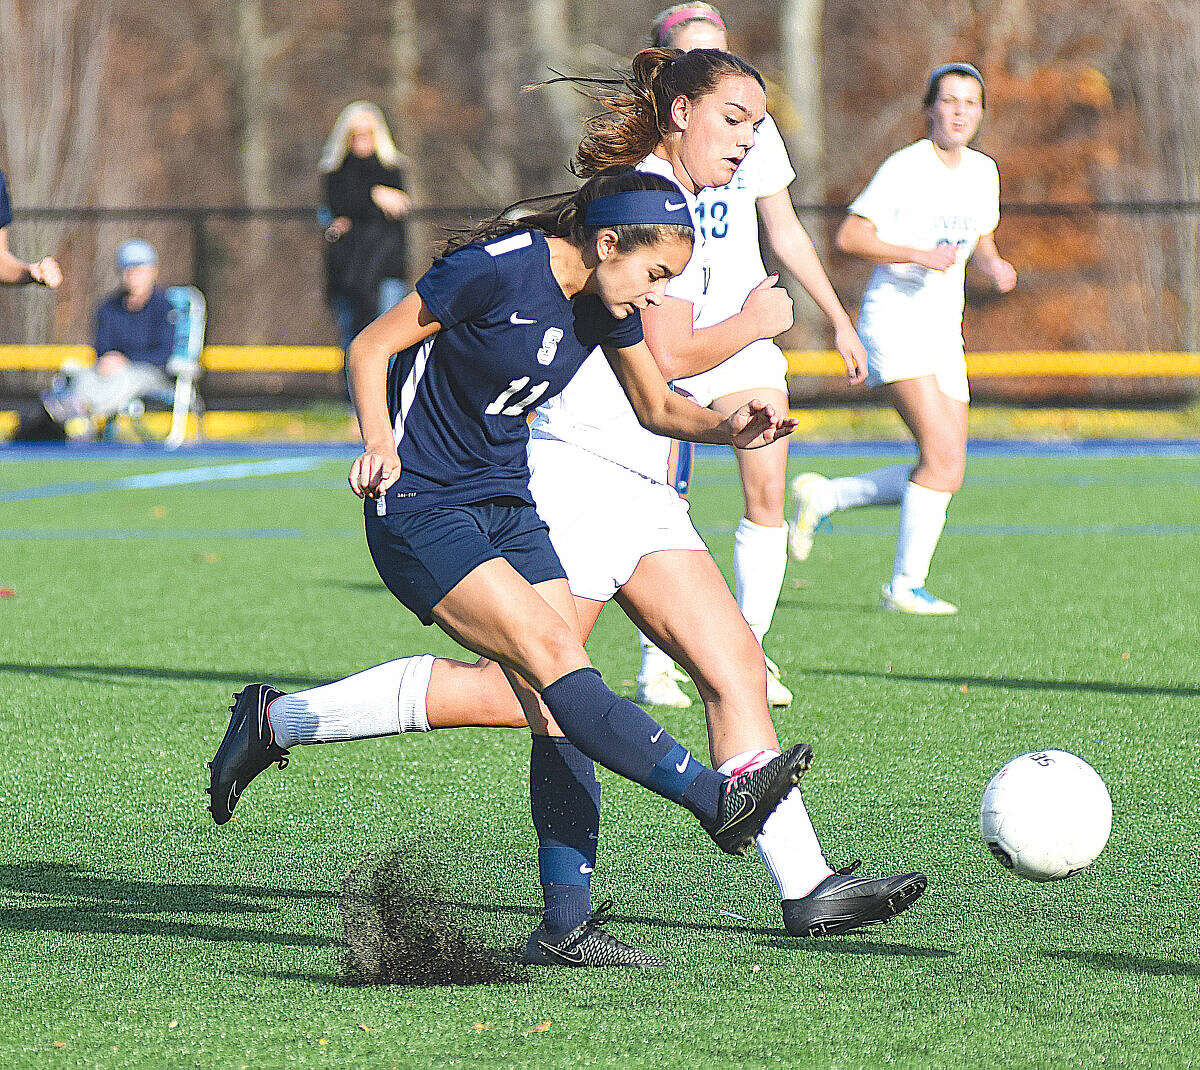 Hour photo/John Nash Staples' Tia Zajec, front, steps in front of a Darien player to boot the ball up the field.